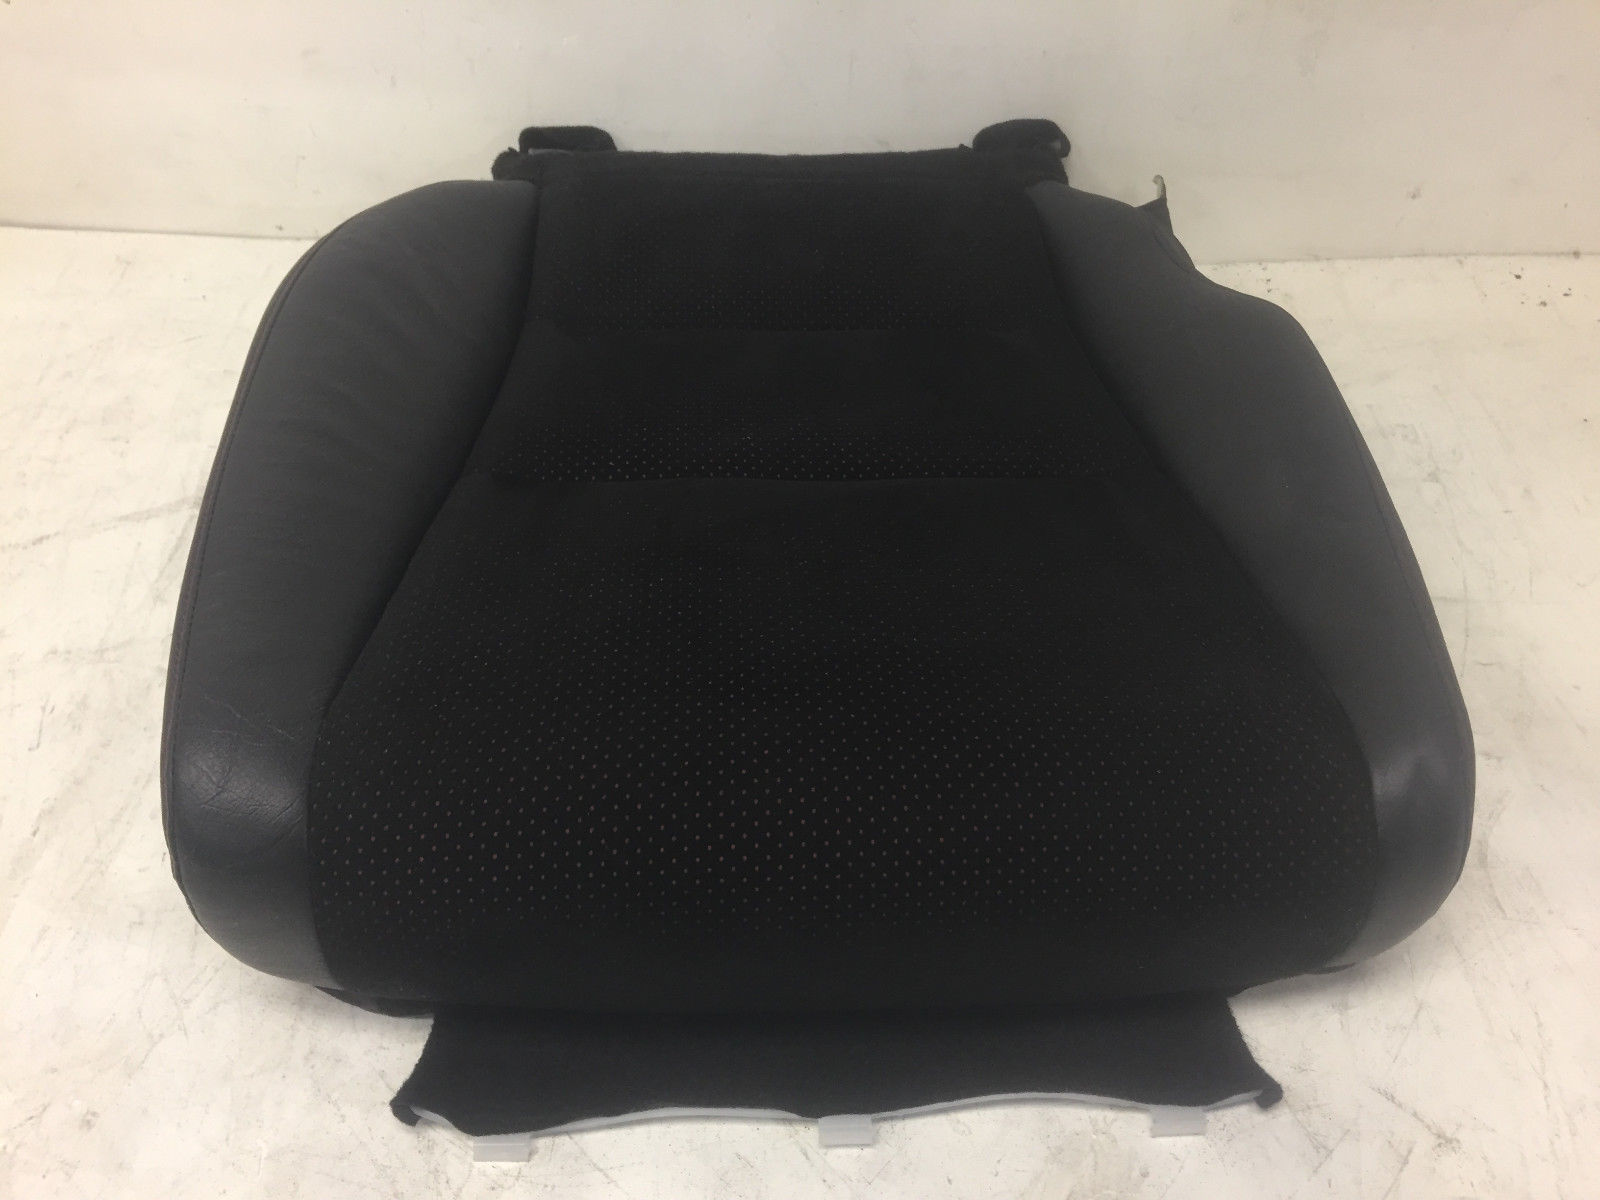 2012 Acura TSX Front Right Passenger Said Black & Red Leather Cover Origin Seat